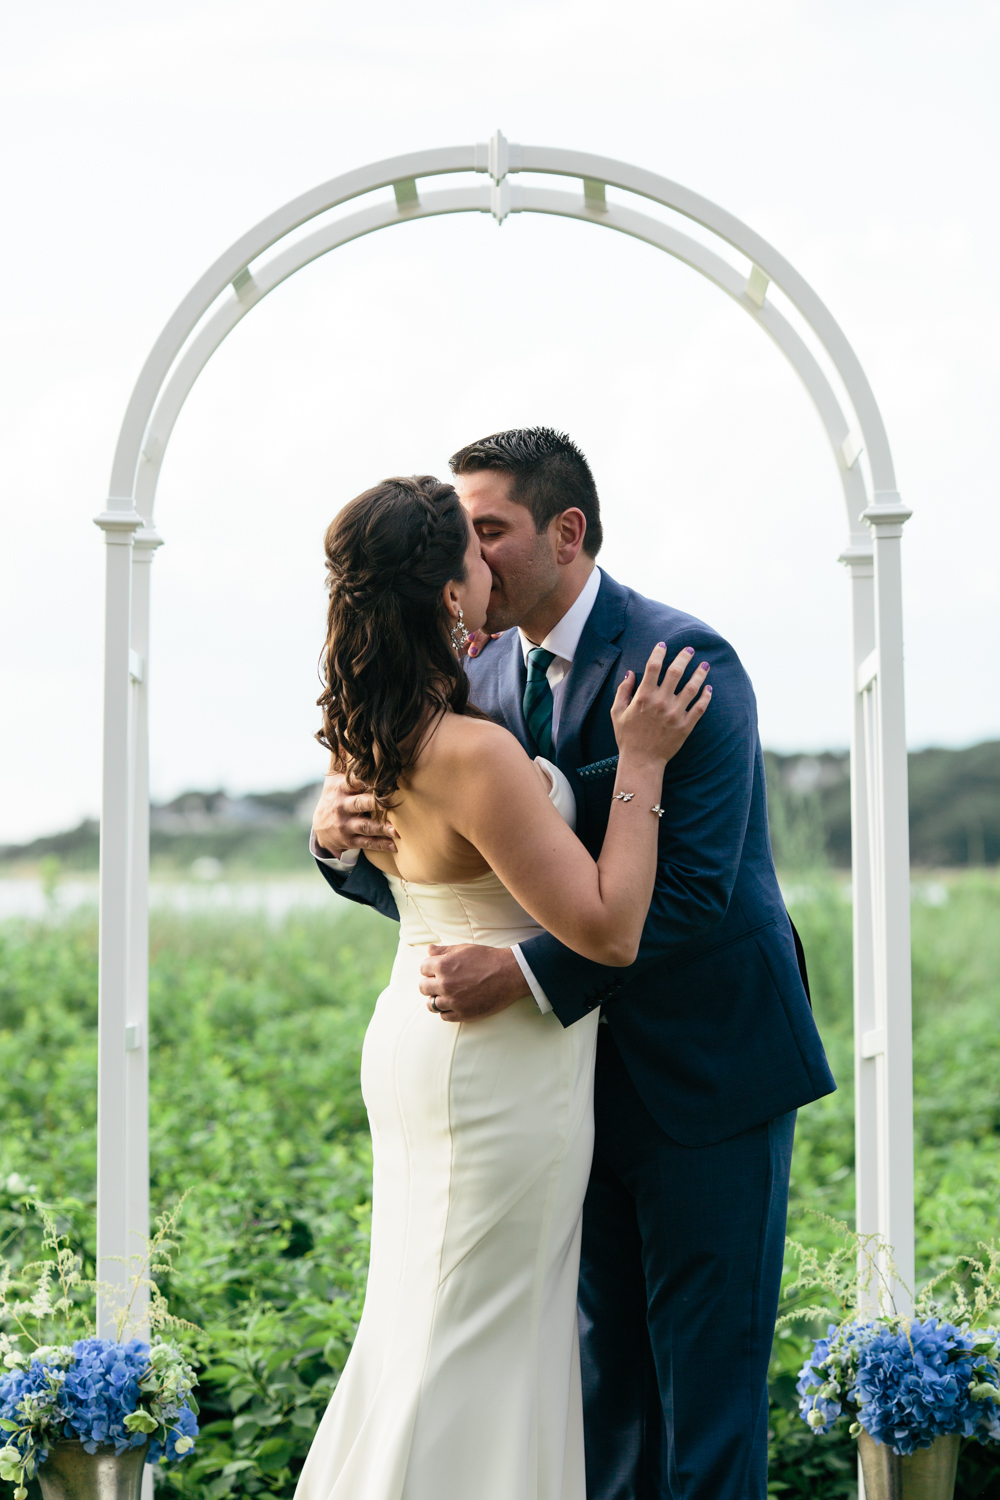 Jess & Rob Falmouth Wedding by Dagny Kream Photography-25.jpg